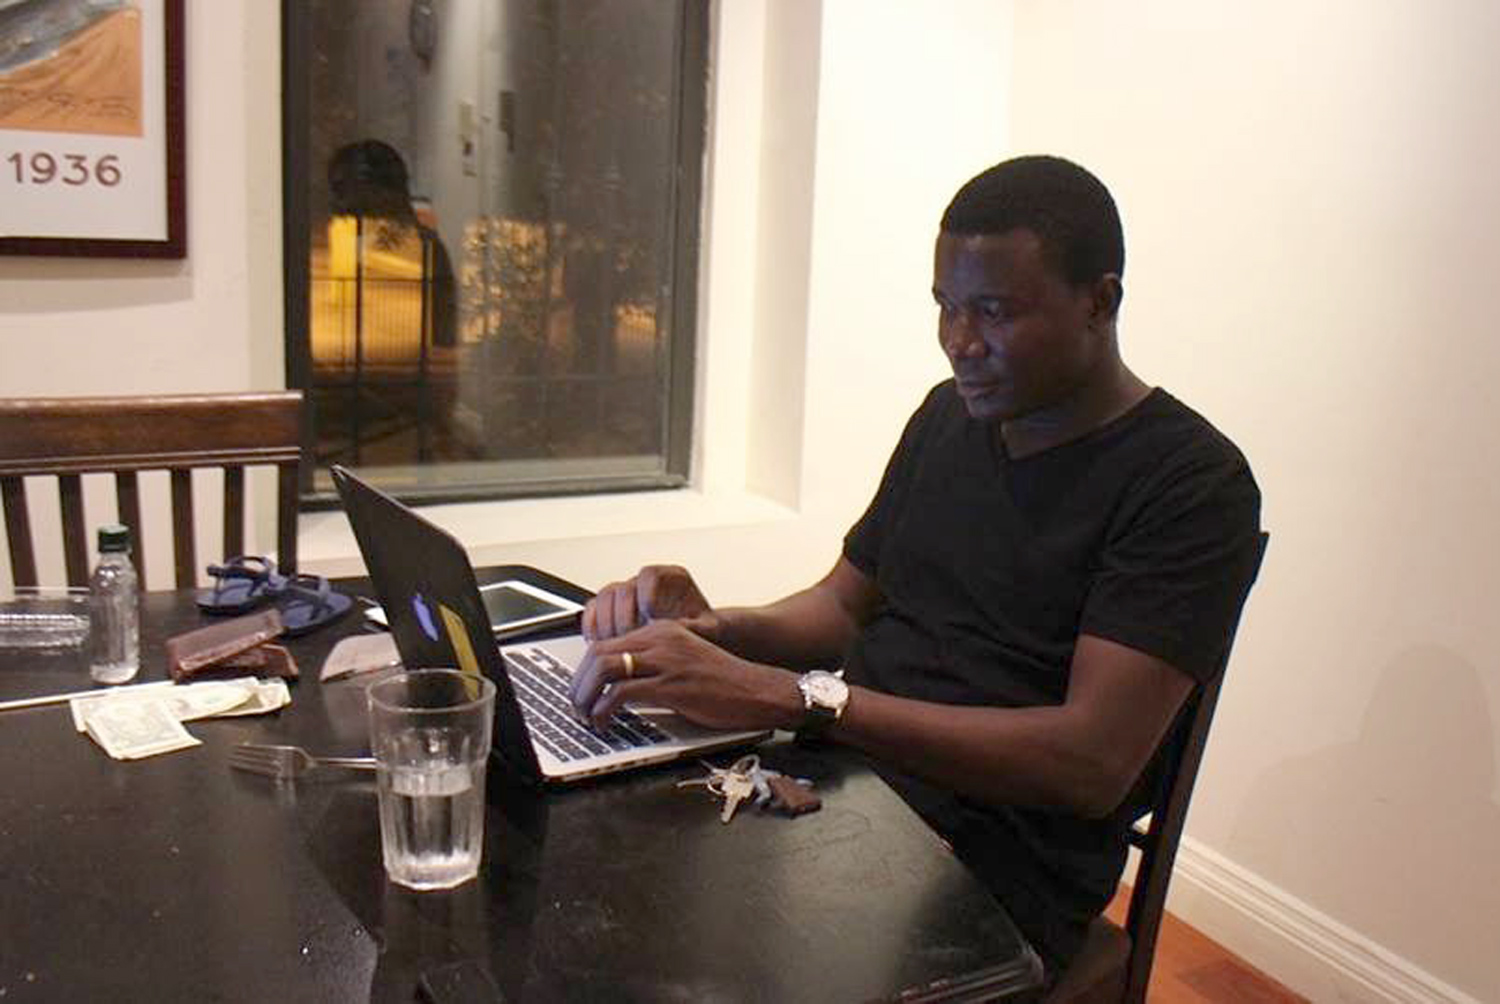 We met Yorùbá linguist and poet Kọ́lá Túbọ̀sún for a talk in his home office in Lagos, Nigeria. ©Kọ́lá Túbọ̀sún